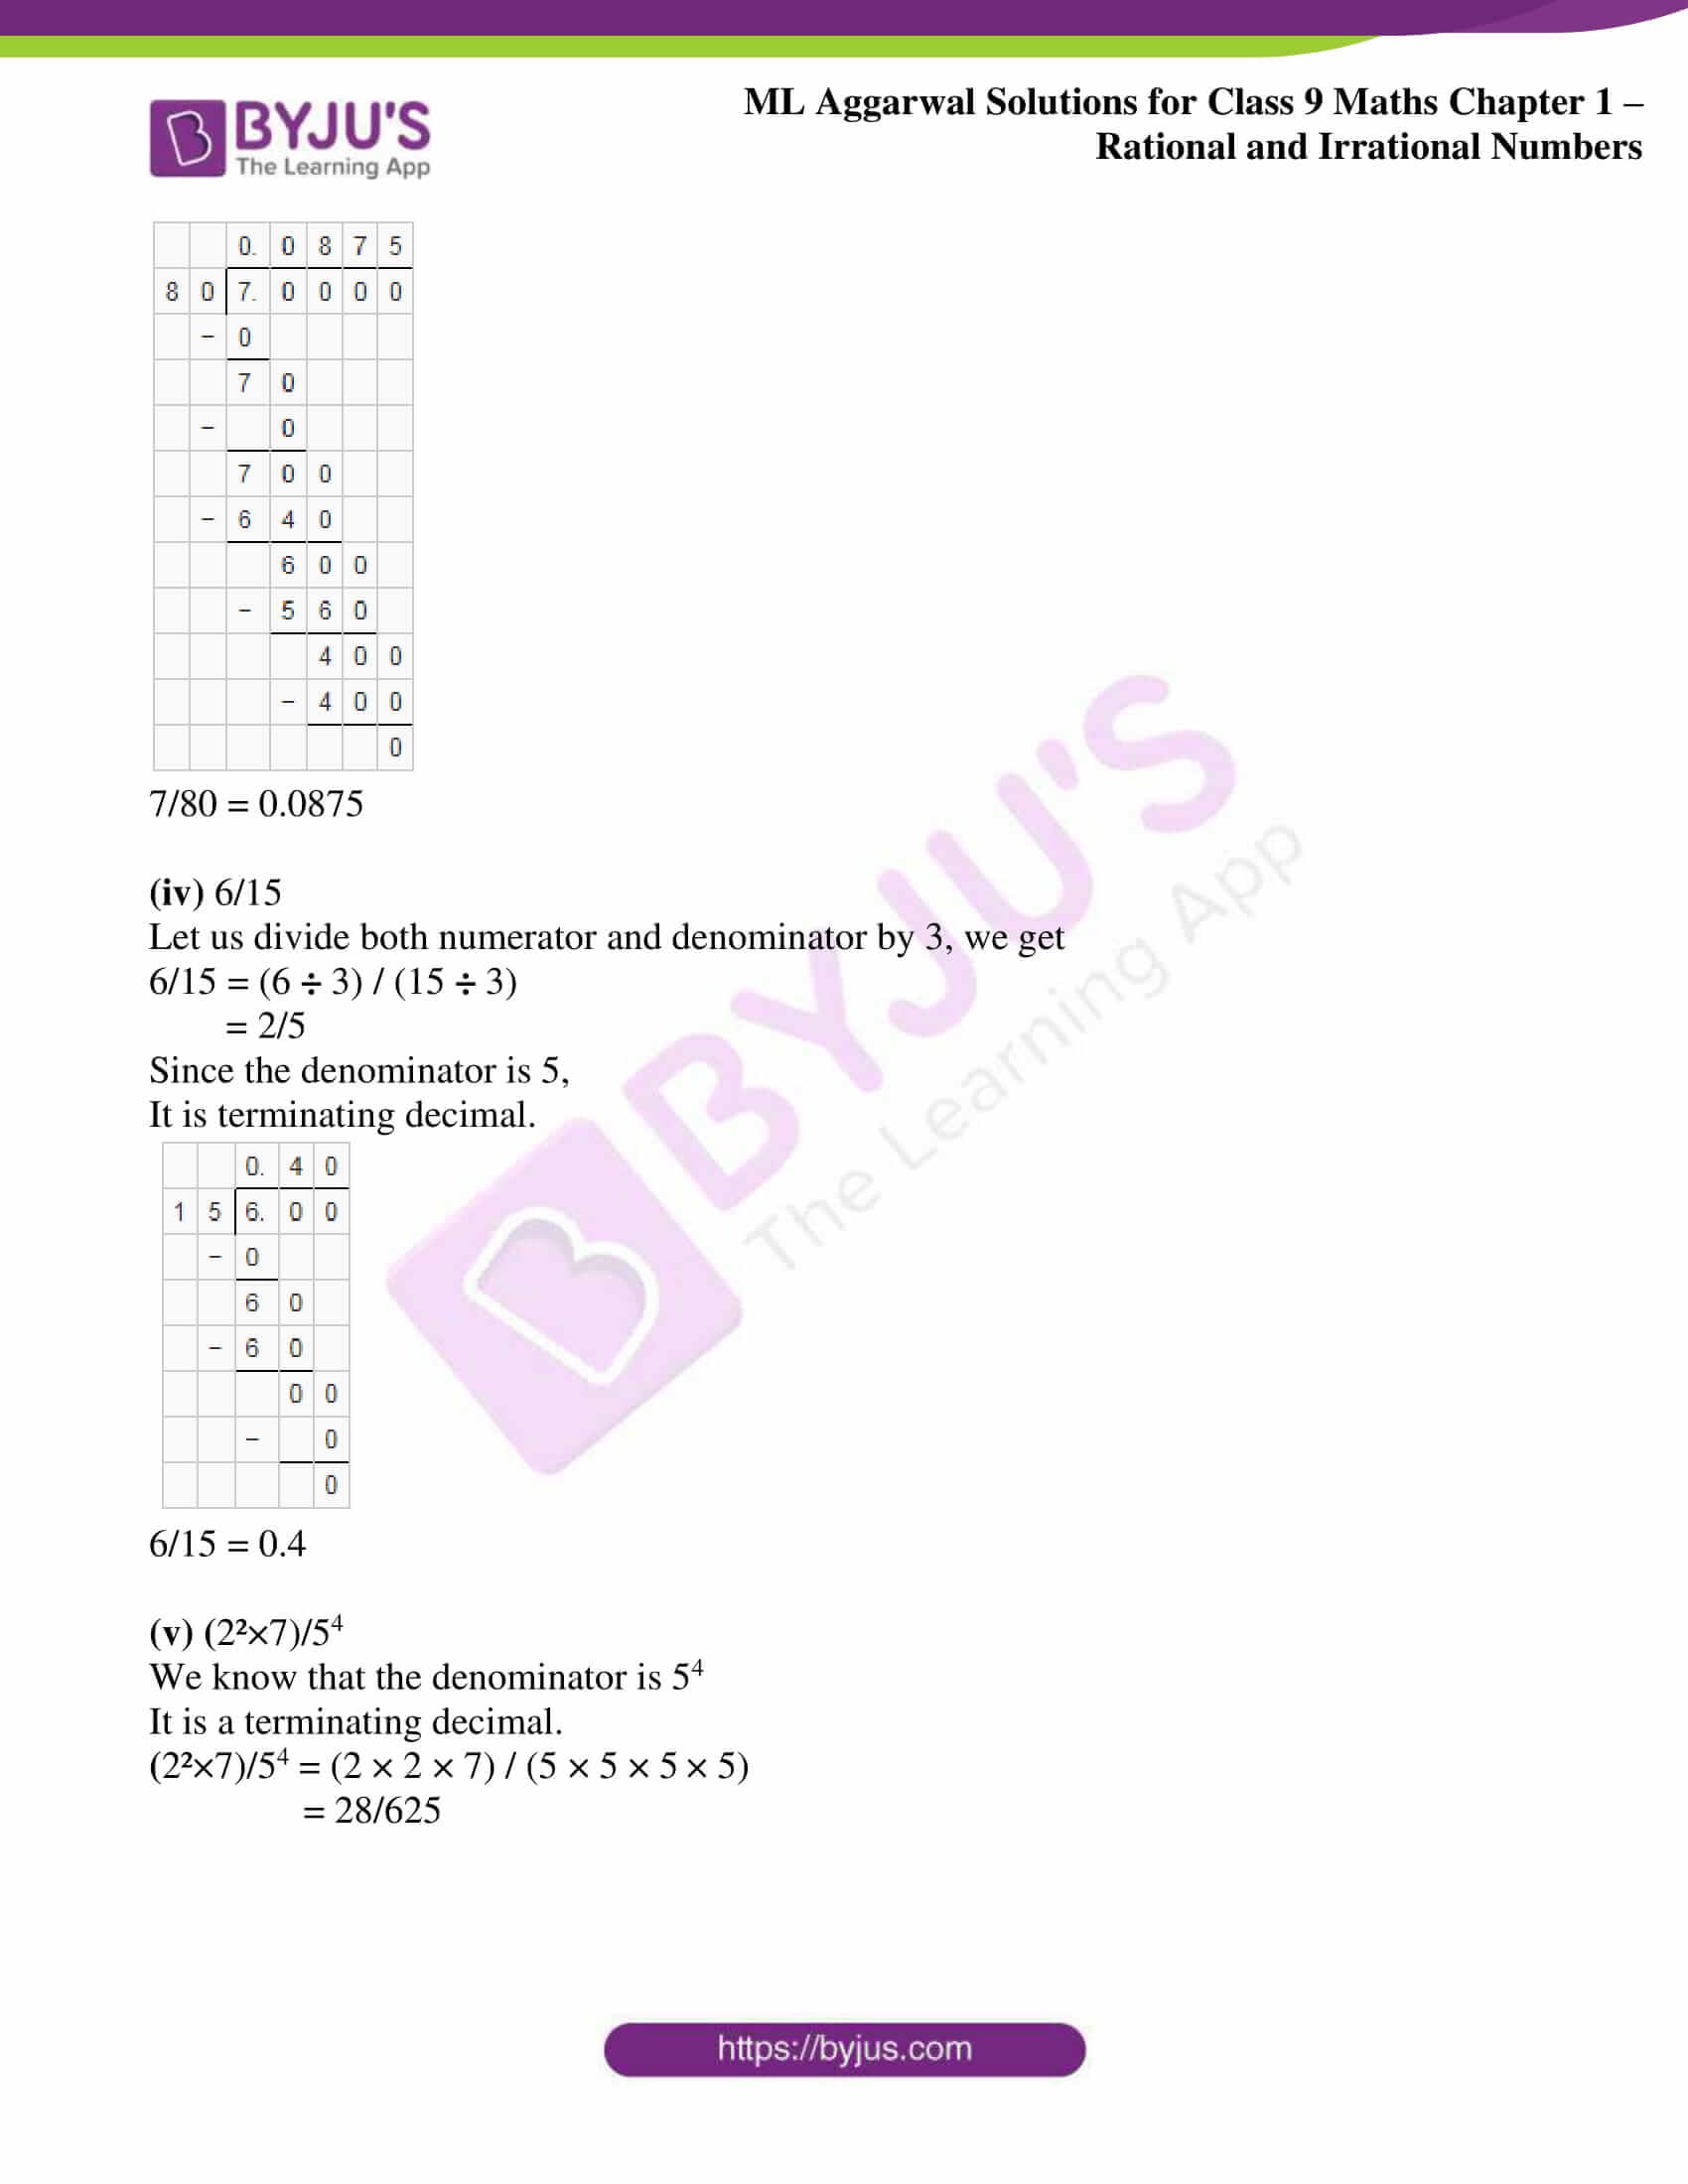 ml aggarwal solutions for class 9 maths chapter 1 25